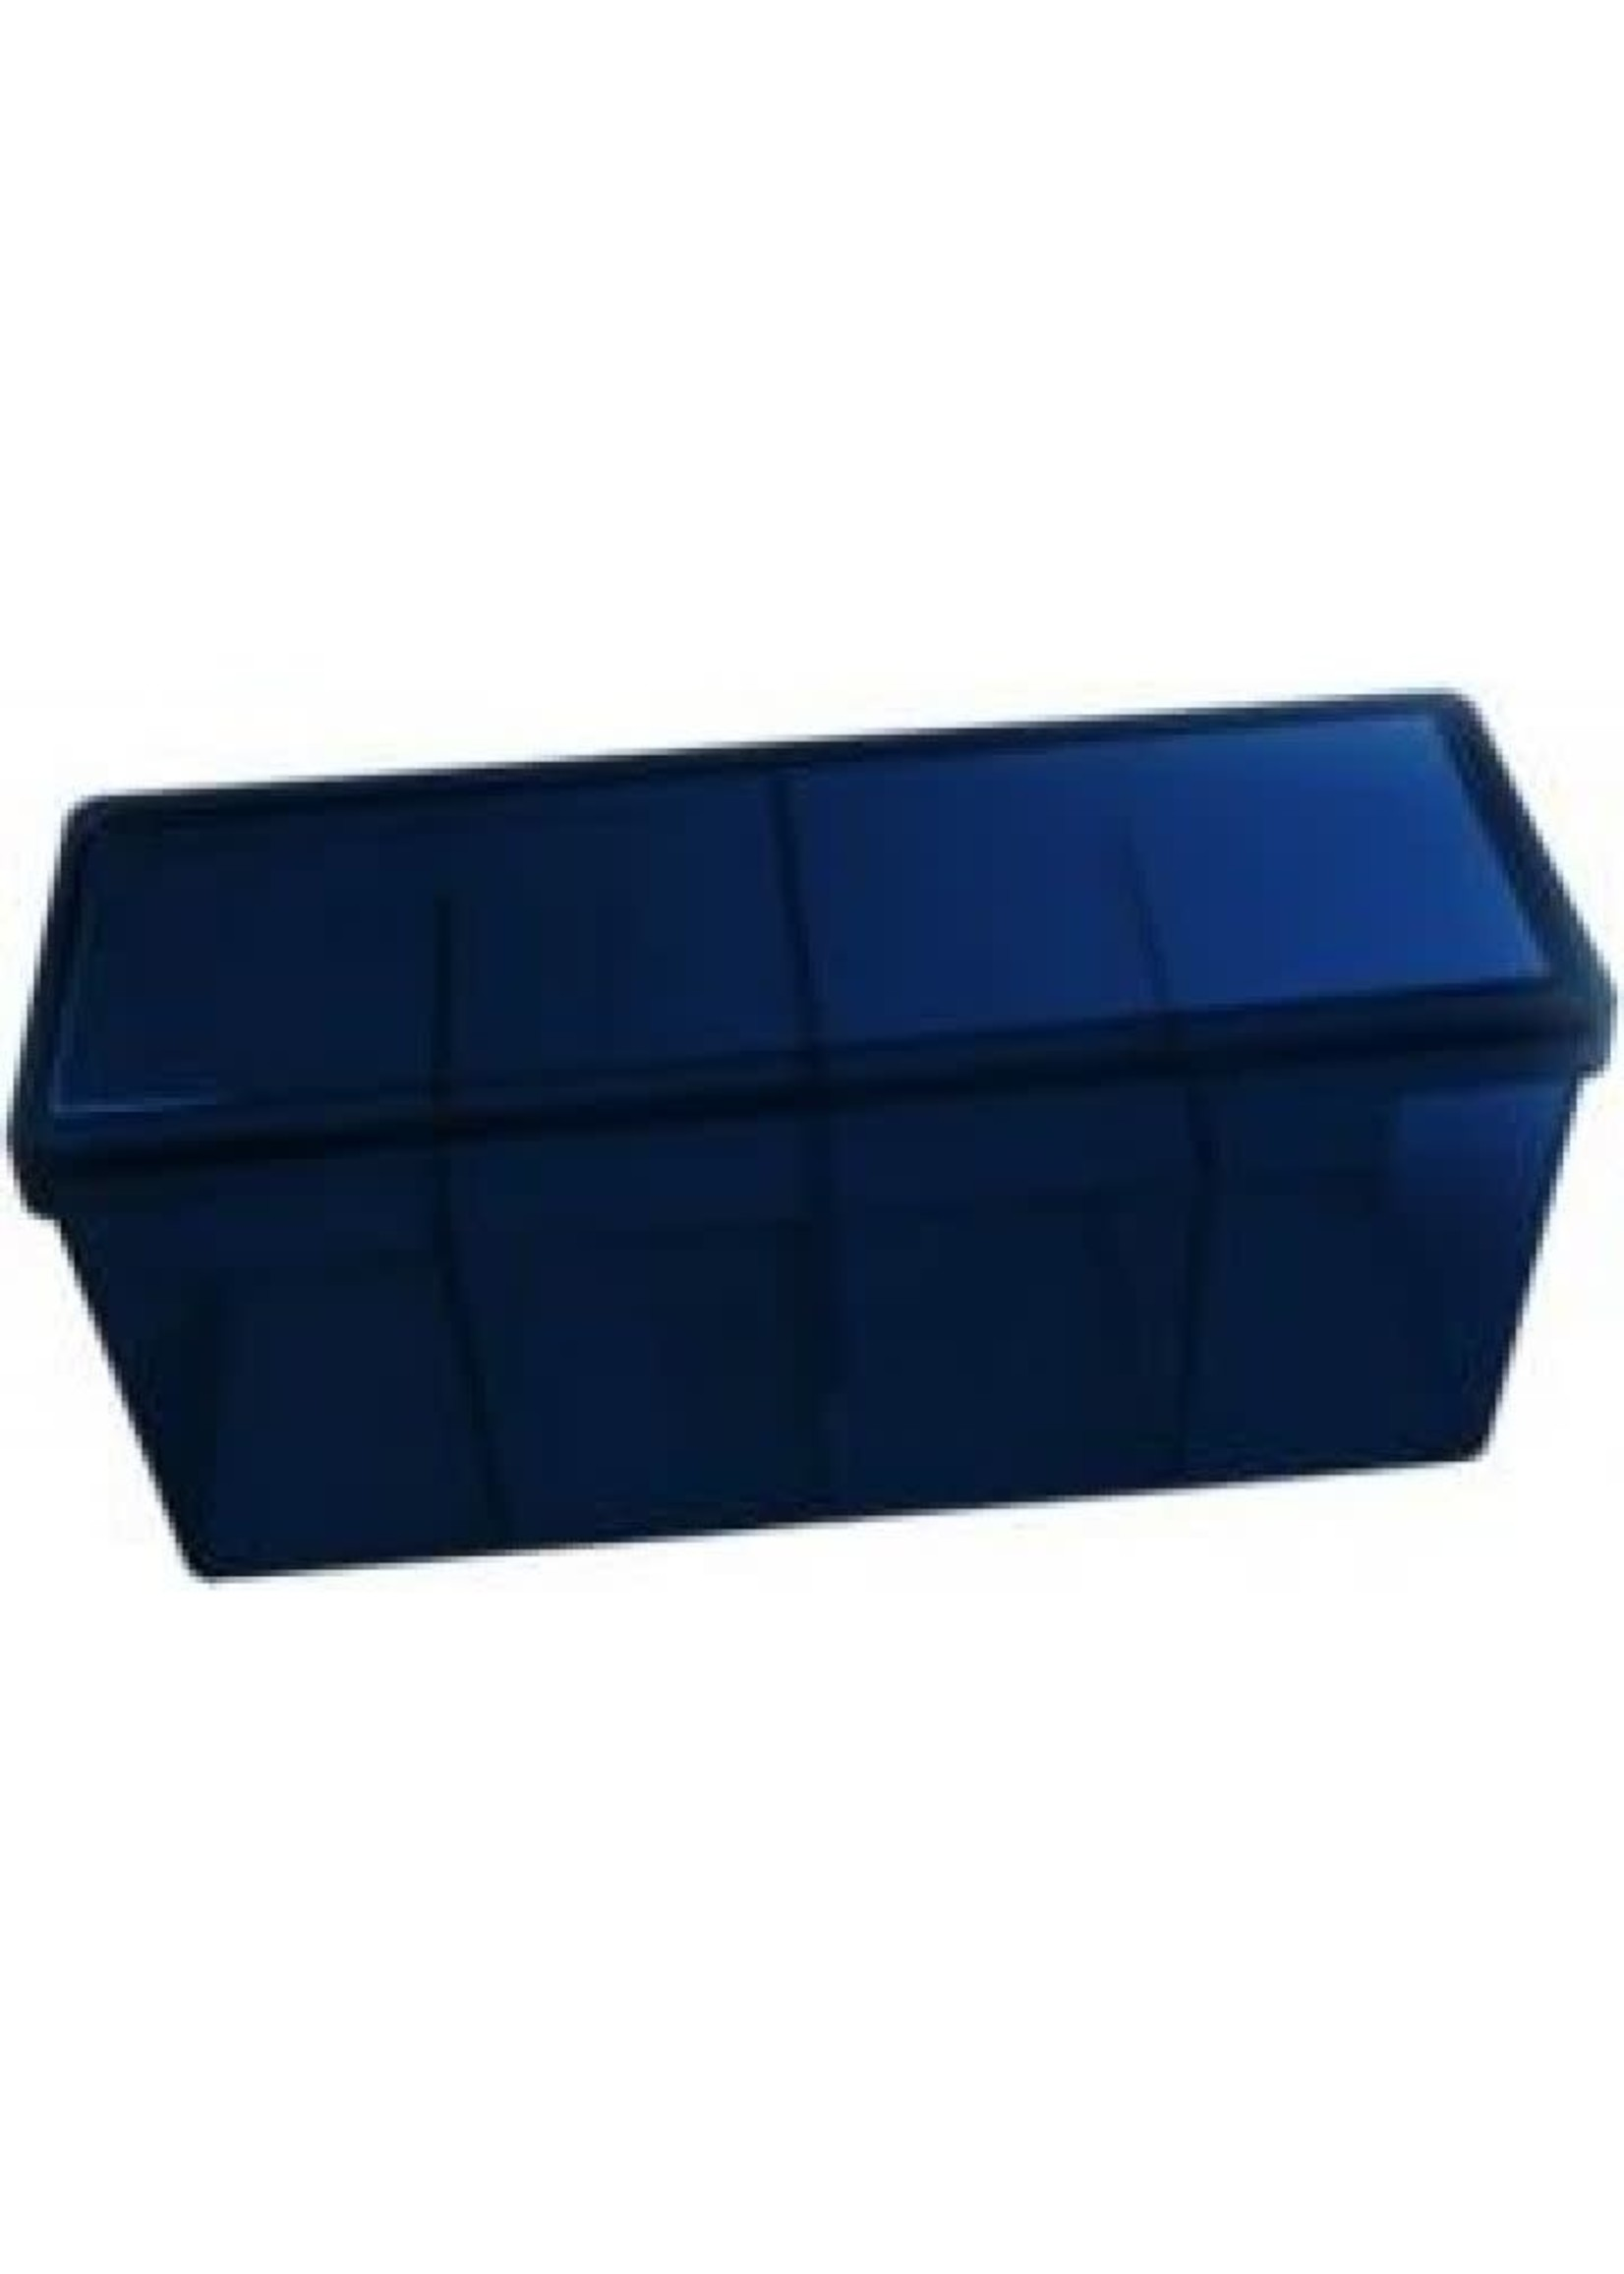 Dragonshield Four Compartment Box Blue